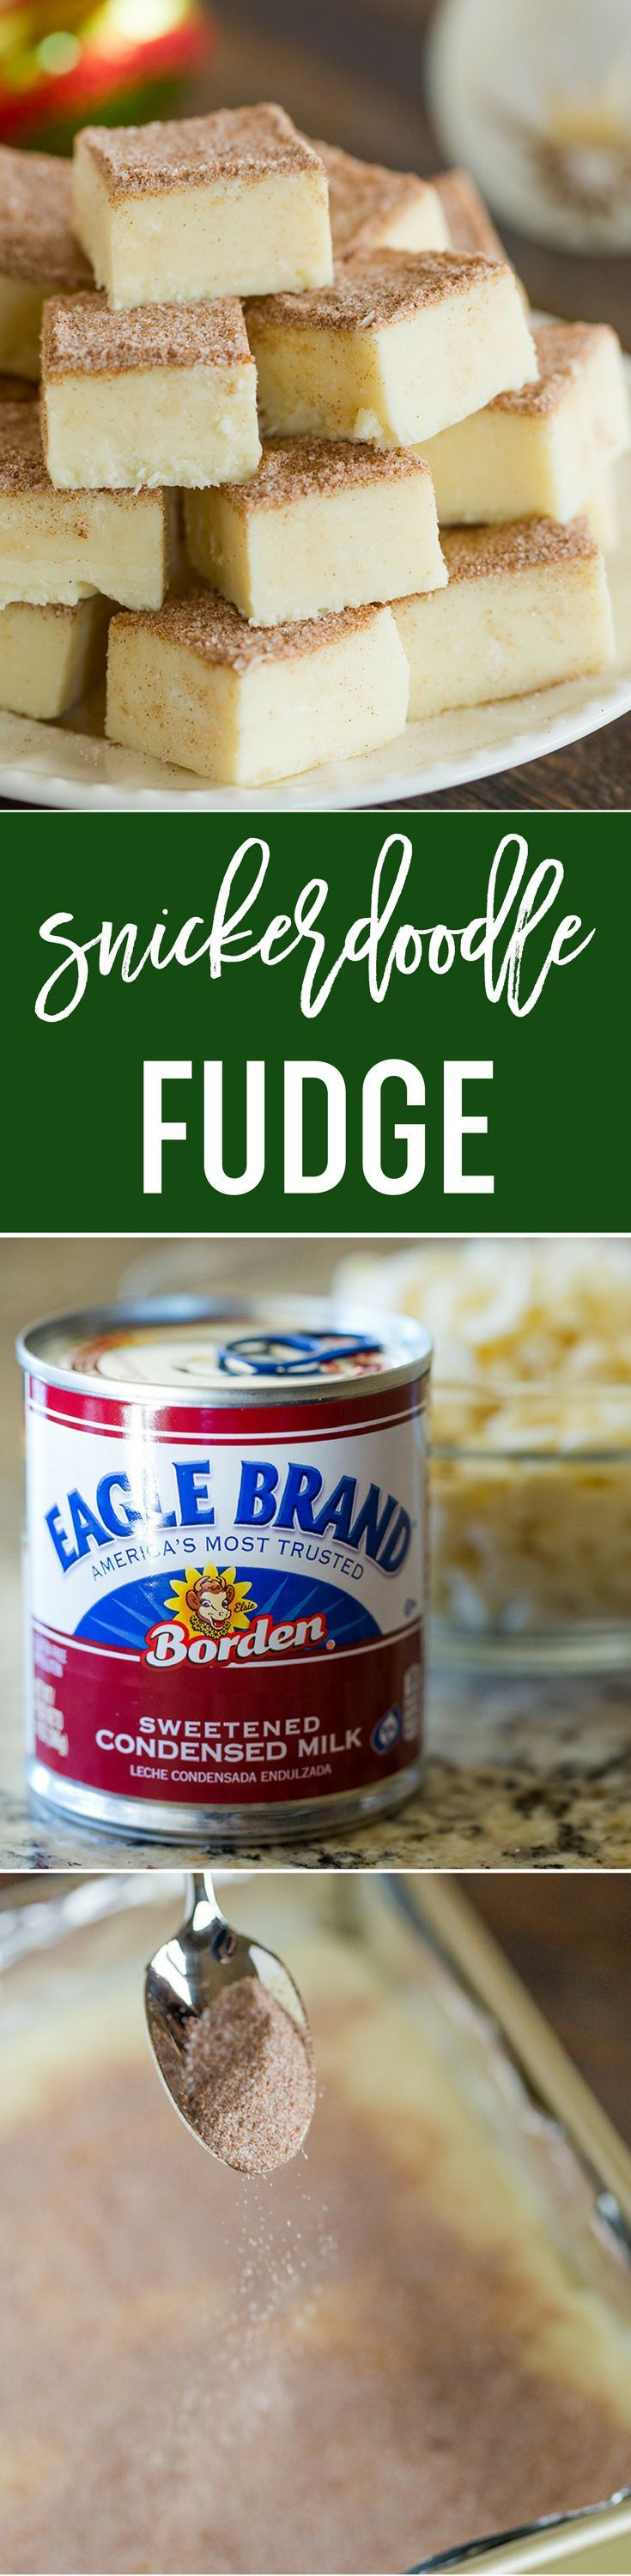 Snickerdoodle Fudge! Five ingredients, 10 minutes, and all of the wonderful flavors of snickerdoodle cookies. A perfect addition to holiday cookie trays. Created in partnership with @eaglebrand. #baking #christmas #fudge #candy #snickerdoodles #cinnamon #sponsored via @browneyedbaker